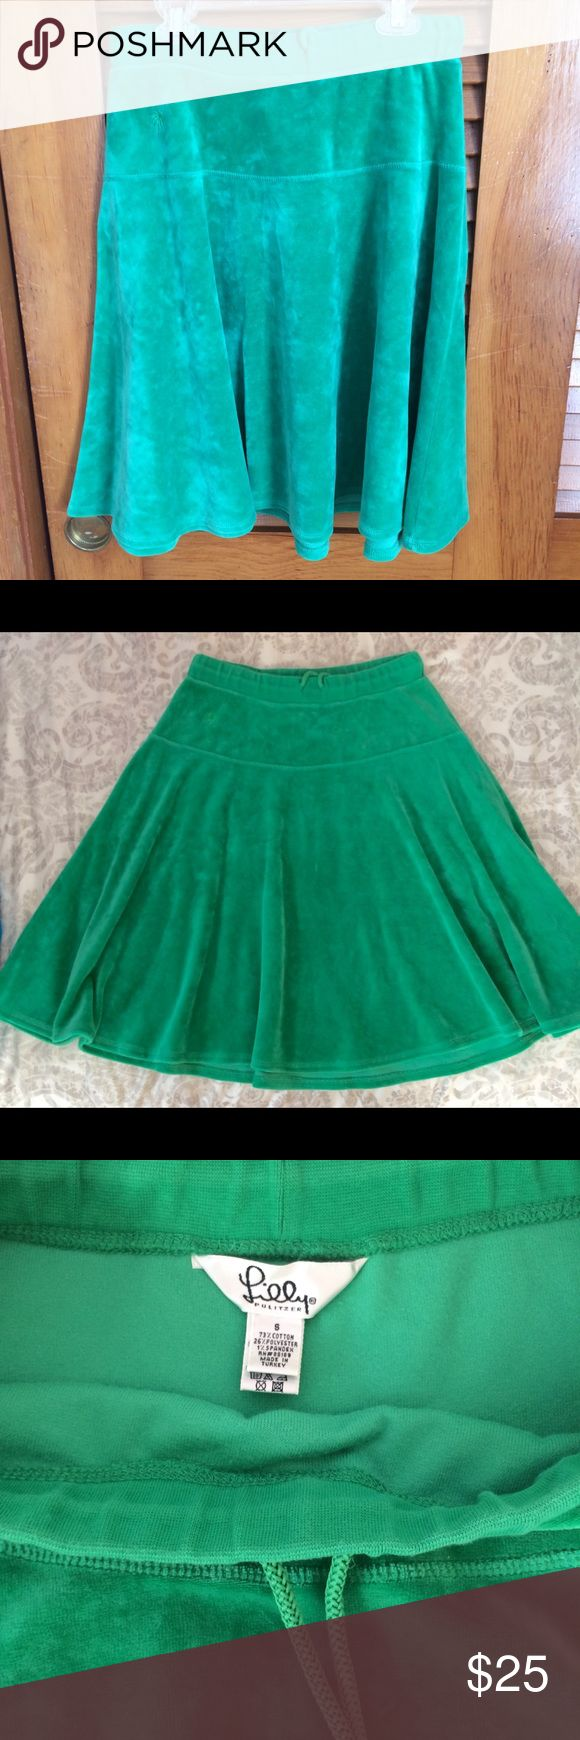 Lily Pulitzer velour skirt Brand new Lily Pulitzer velour skirt. In great condition, very comfortable fit and material. Lilly Pulitzer Skirts